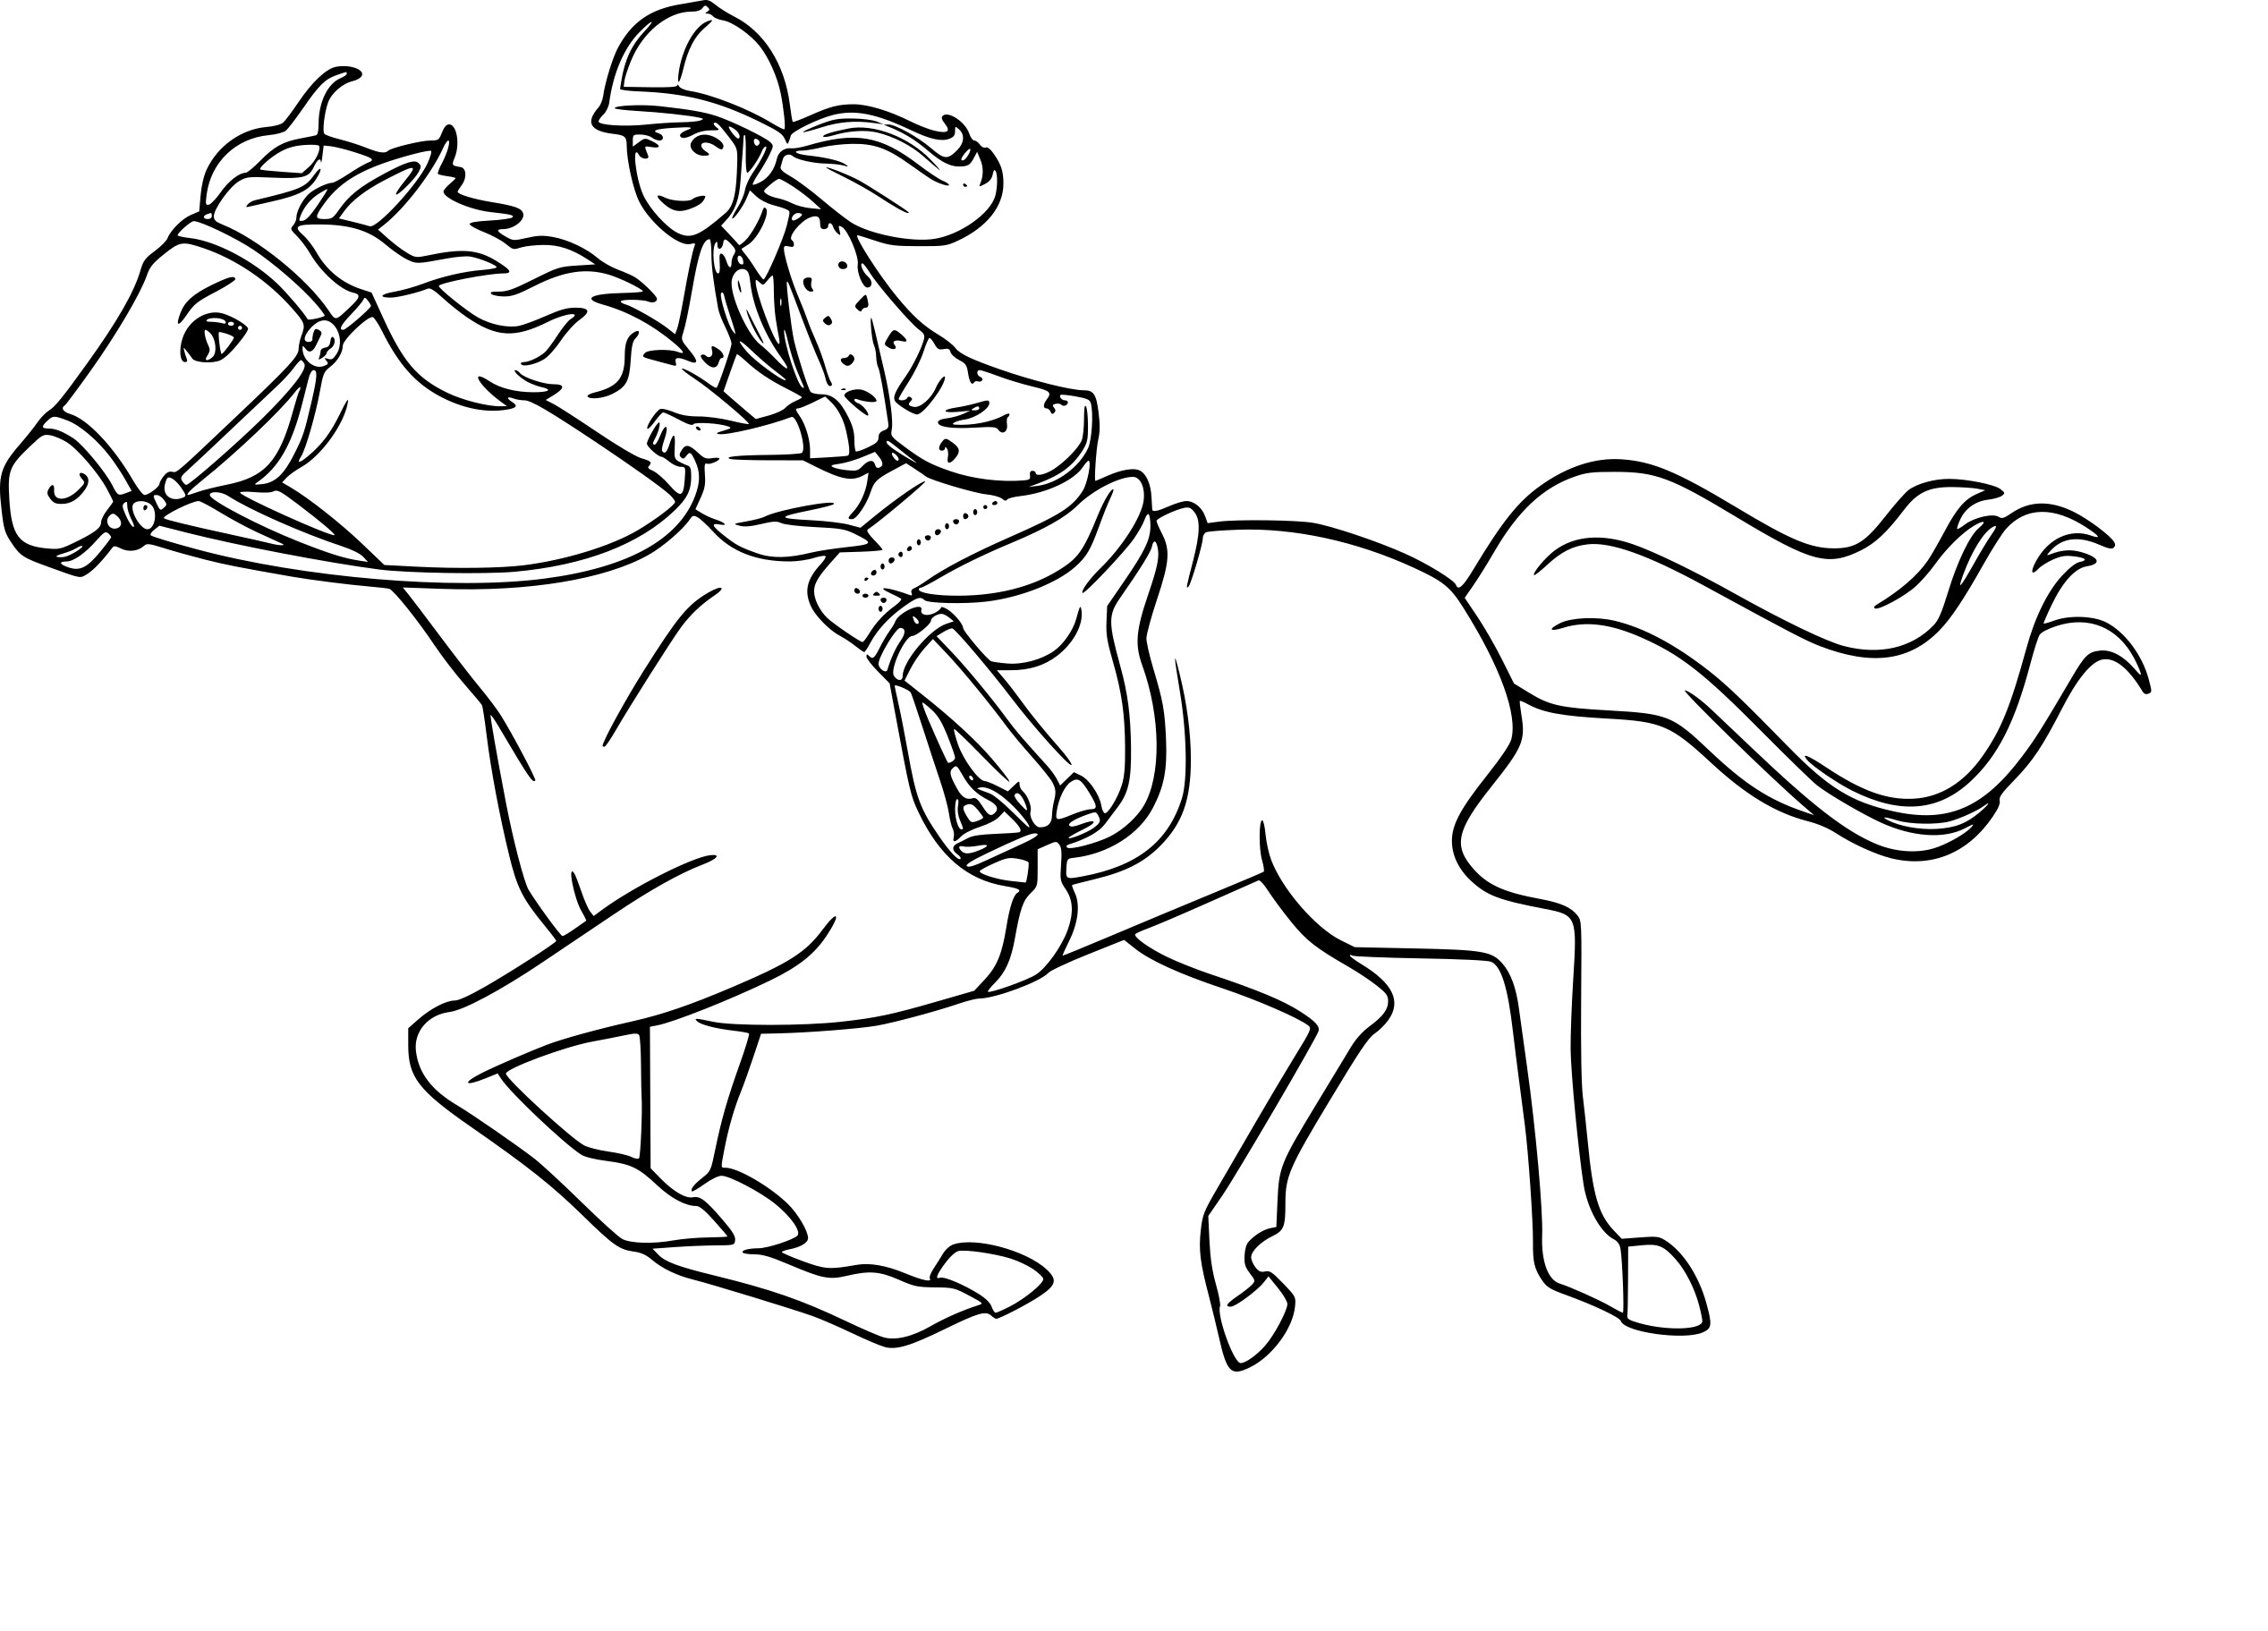 Coloriage barbie cheval imprimer gratuit - Dessin de barbie facile ...